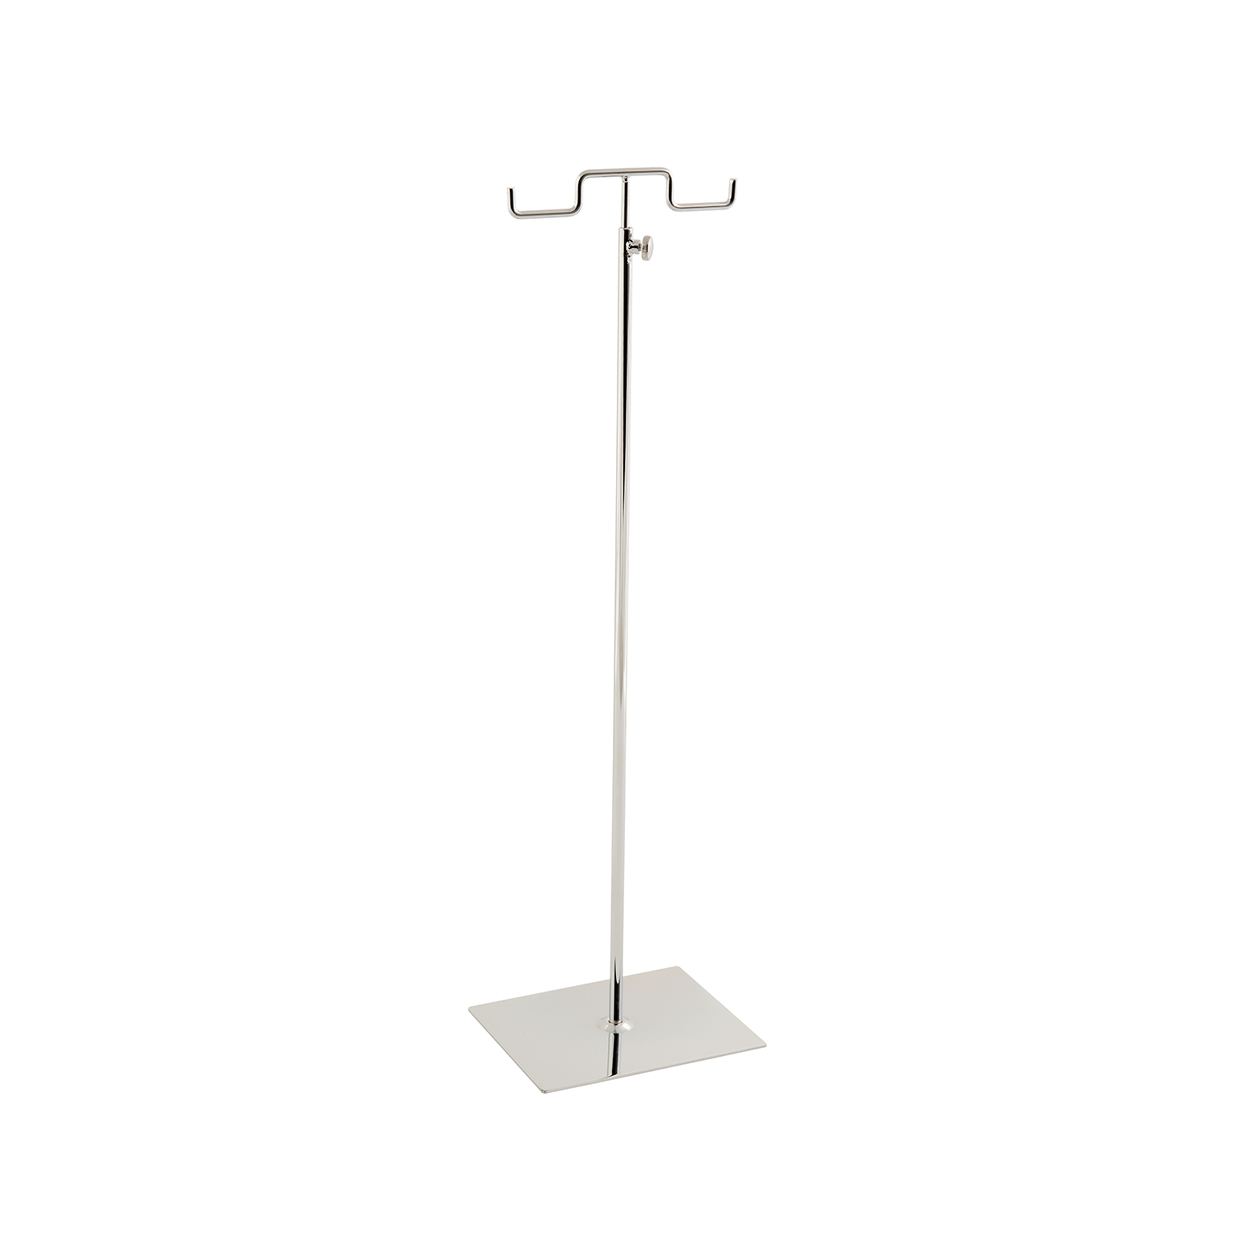 Large Budget Double Sided Handbag Display Stand With Solid Base and adjustable height.